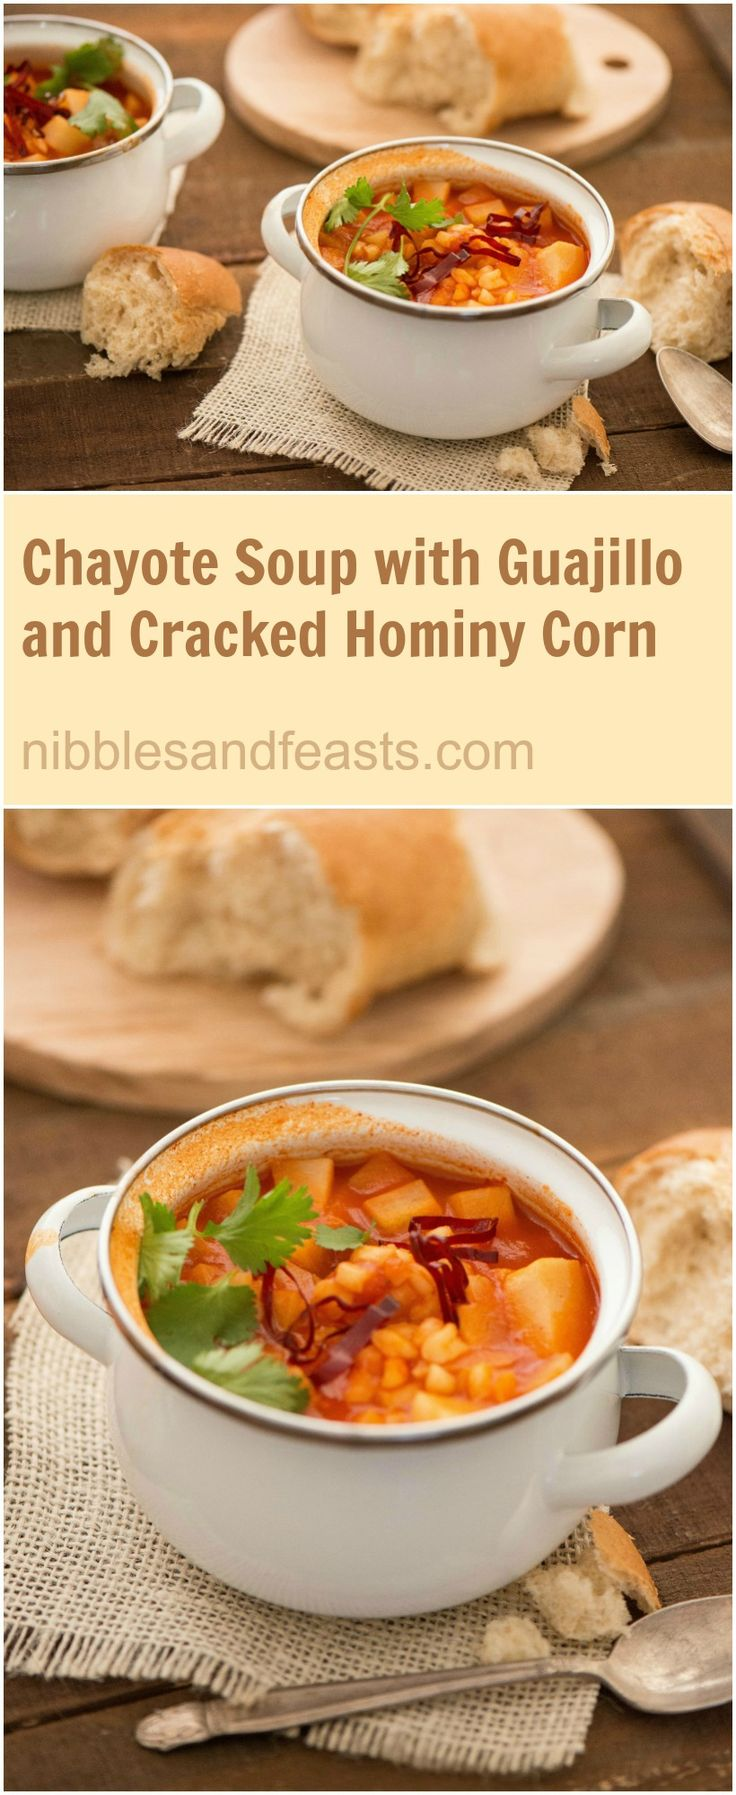 Best 25 hominy corn ideas on pinterest white hominy chipotle chayote soup with guajillo and cracked hominy corn tender chayote with bits of cracked hominy ccuart Choice Image